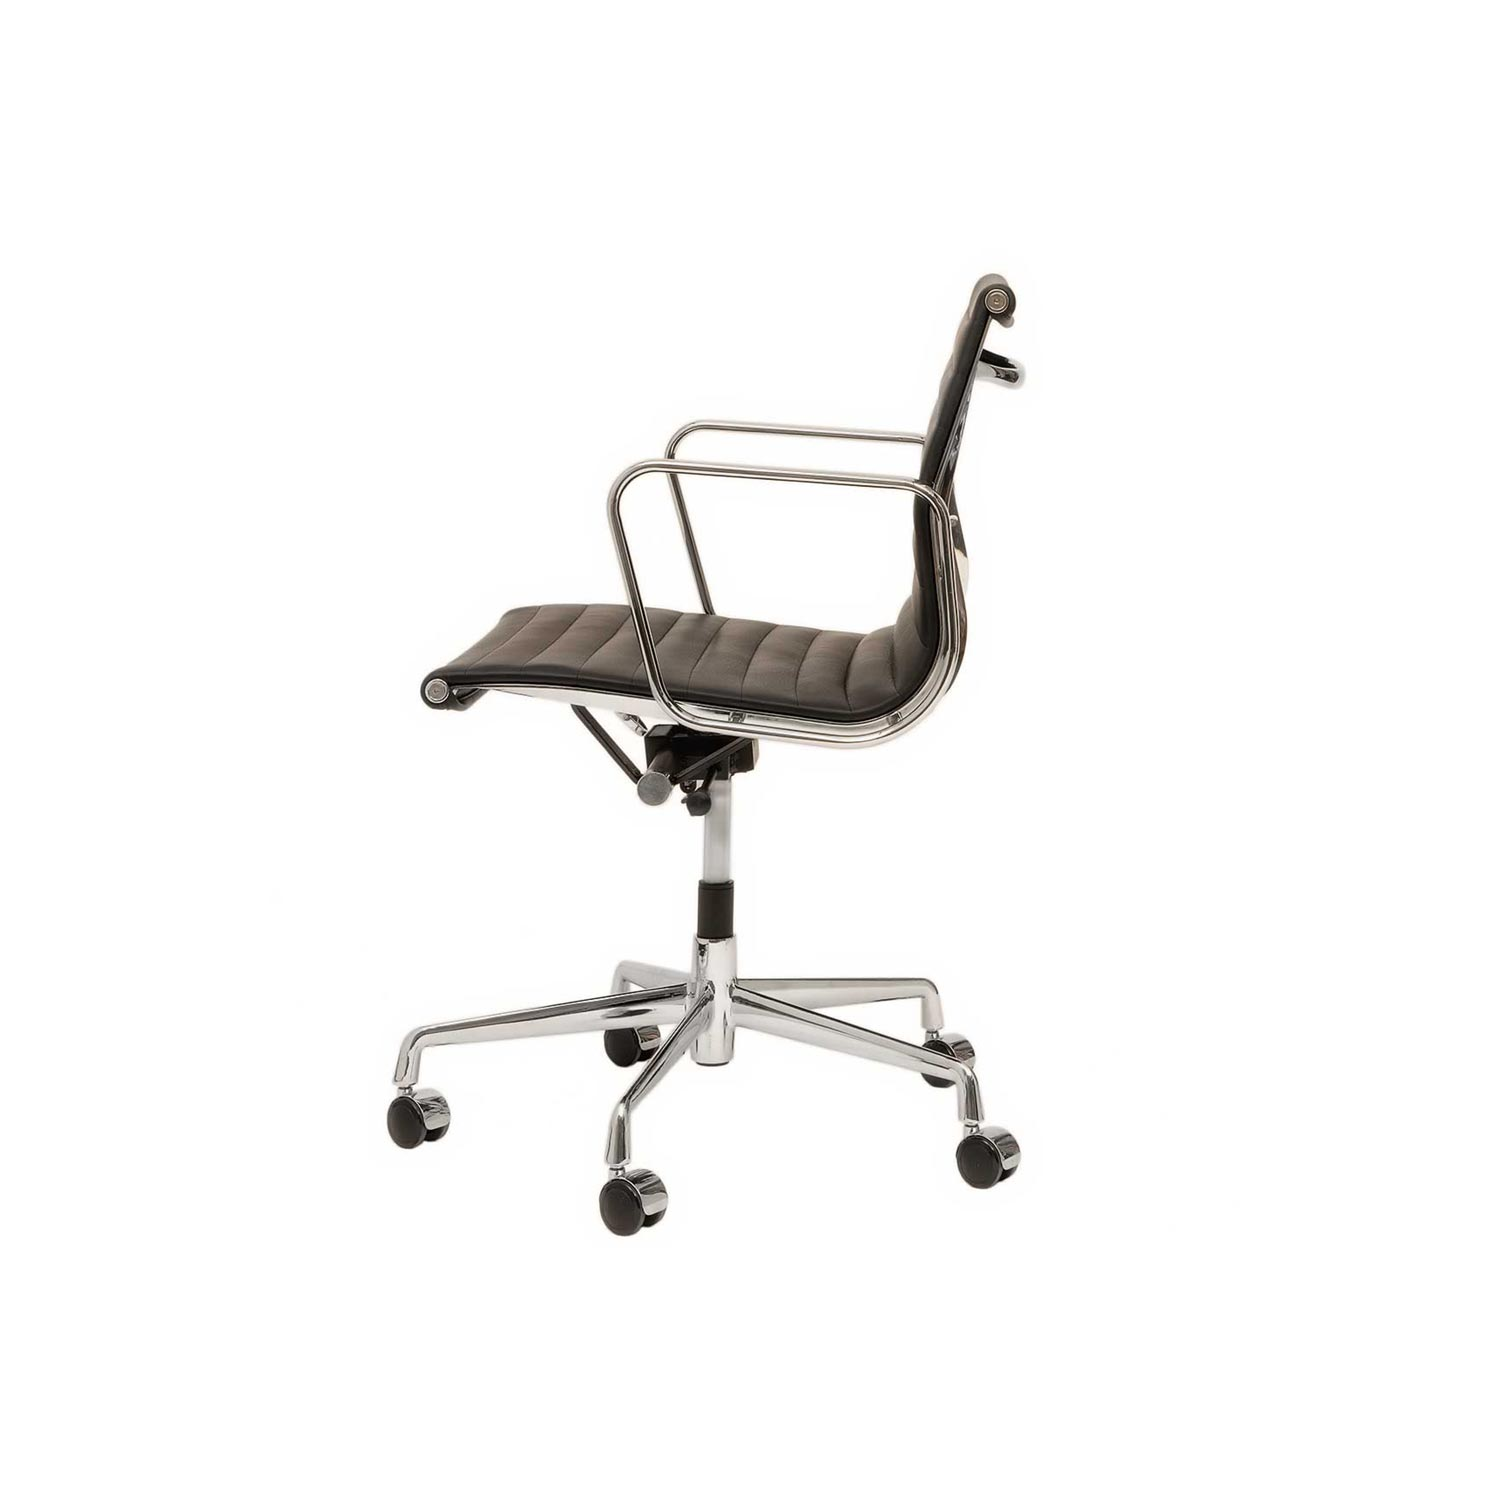 Chaise eames aluminium chair ea 117 classique du design for Reedition chaise eames